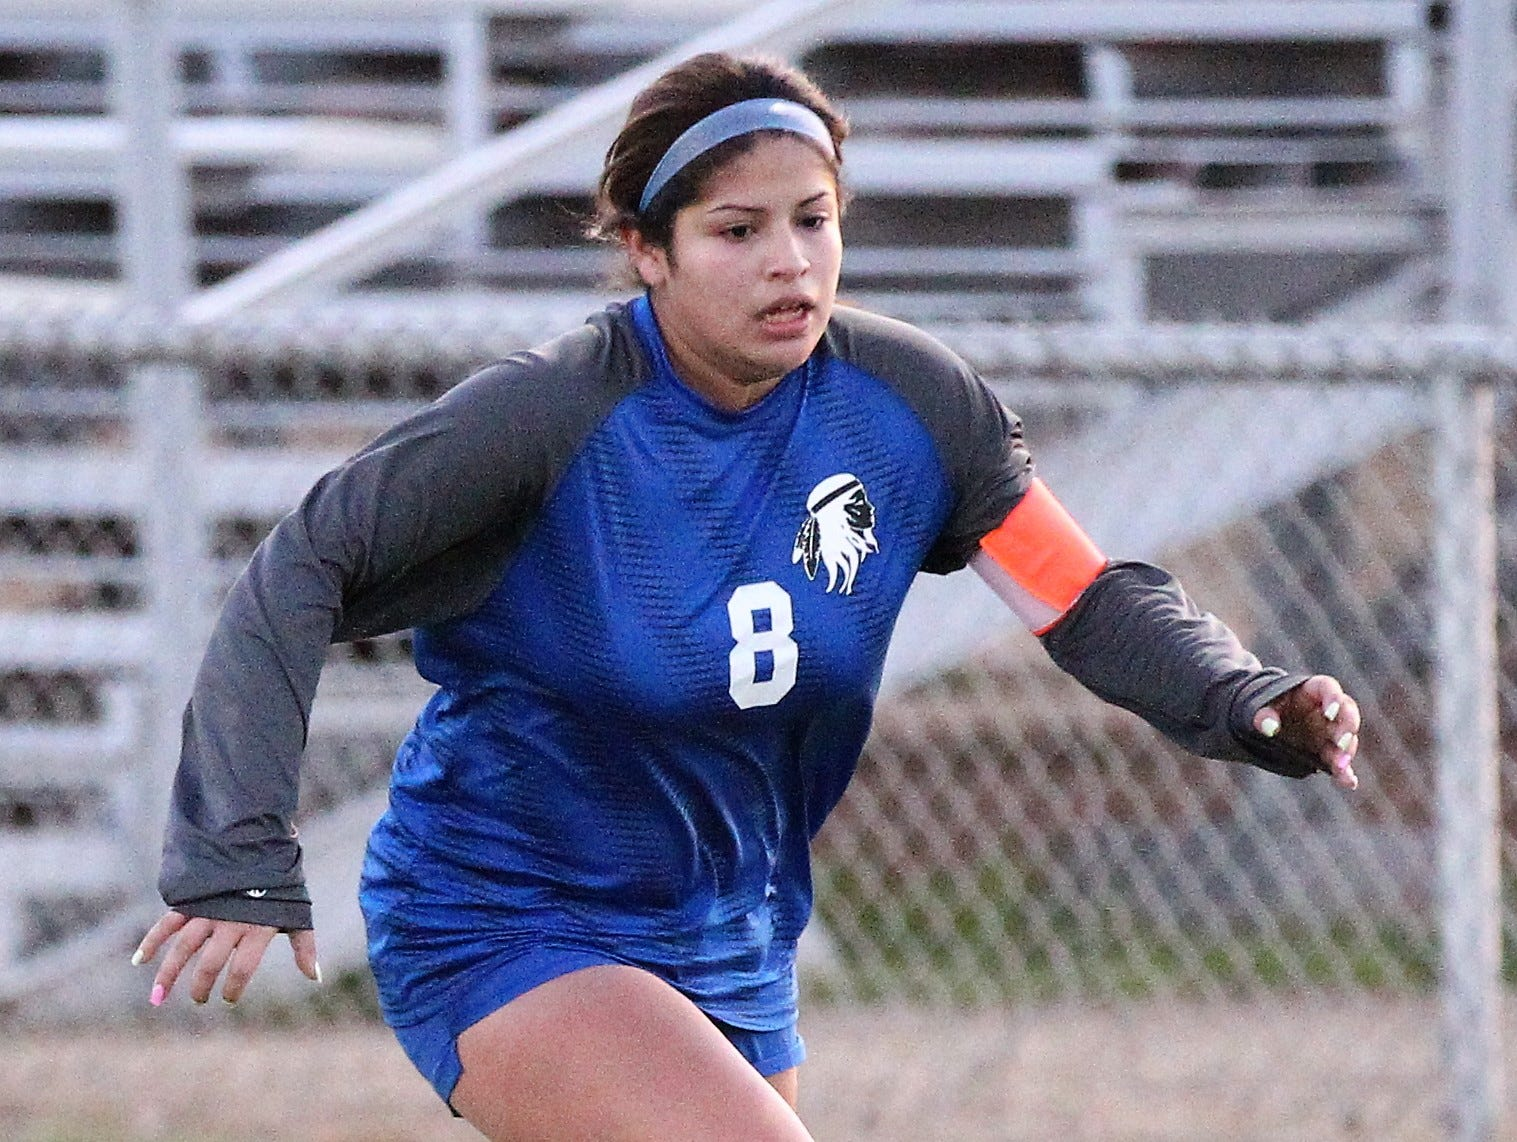 Lake View's Ariana Rangel makes a move toward the goal in a District 4-4A soccer match against Snyder at Old Bobcat Stadium on Tuesday, March 5, 2019.